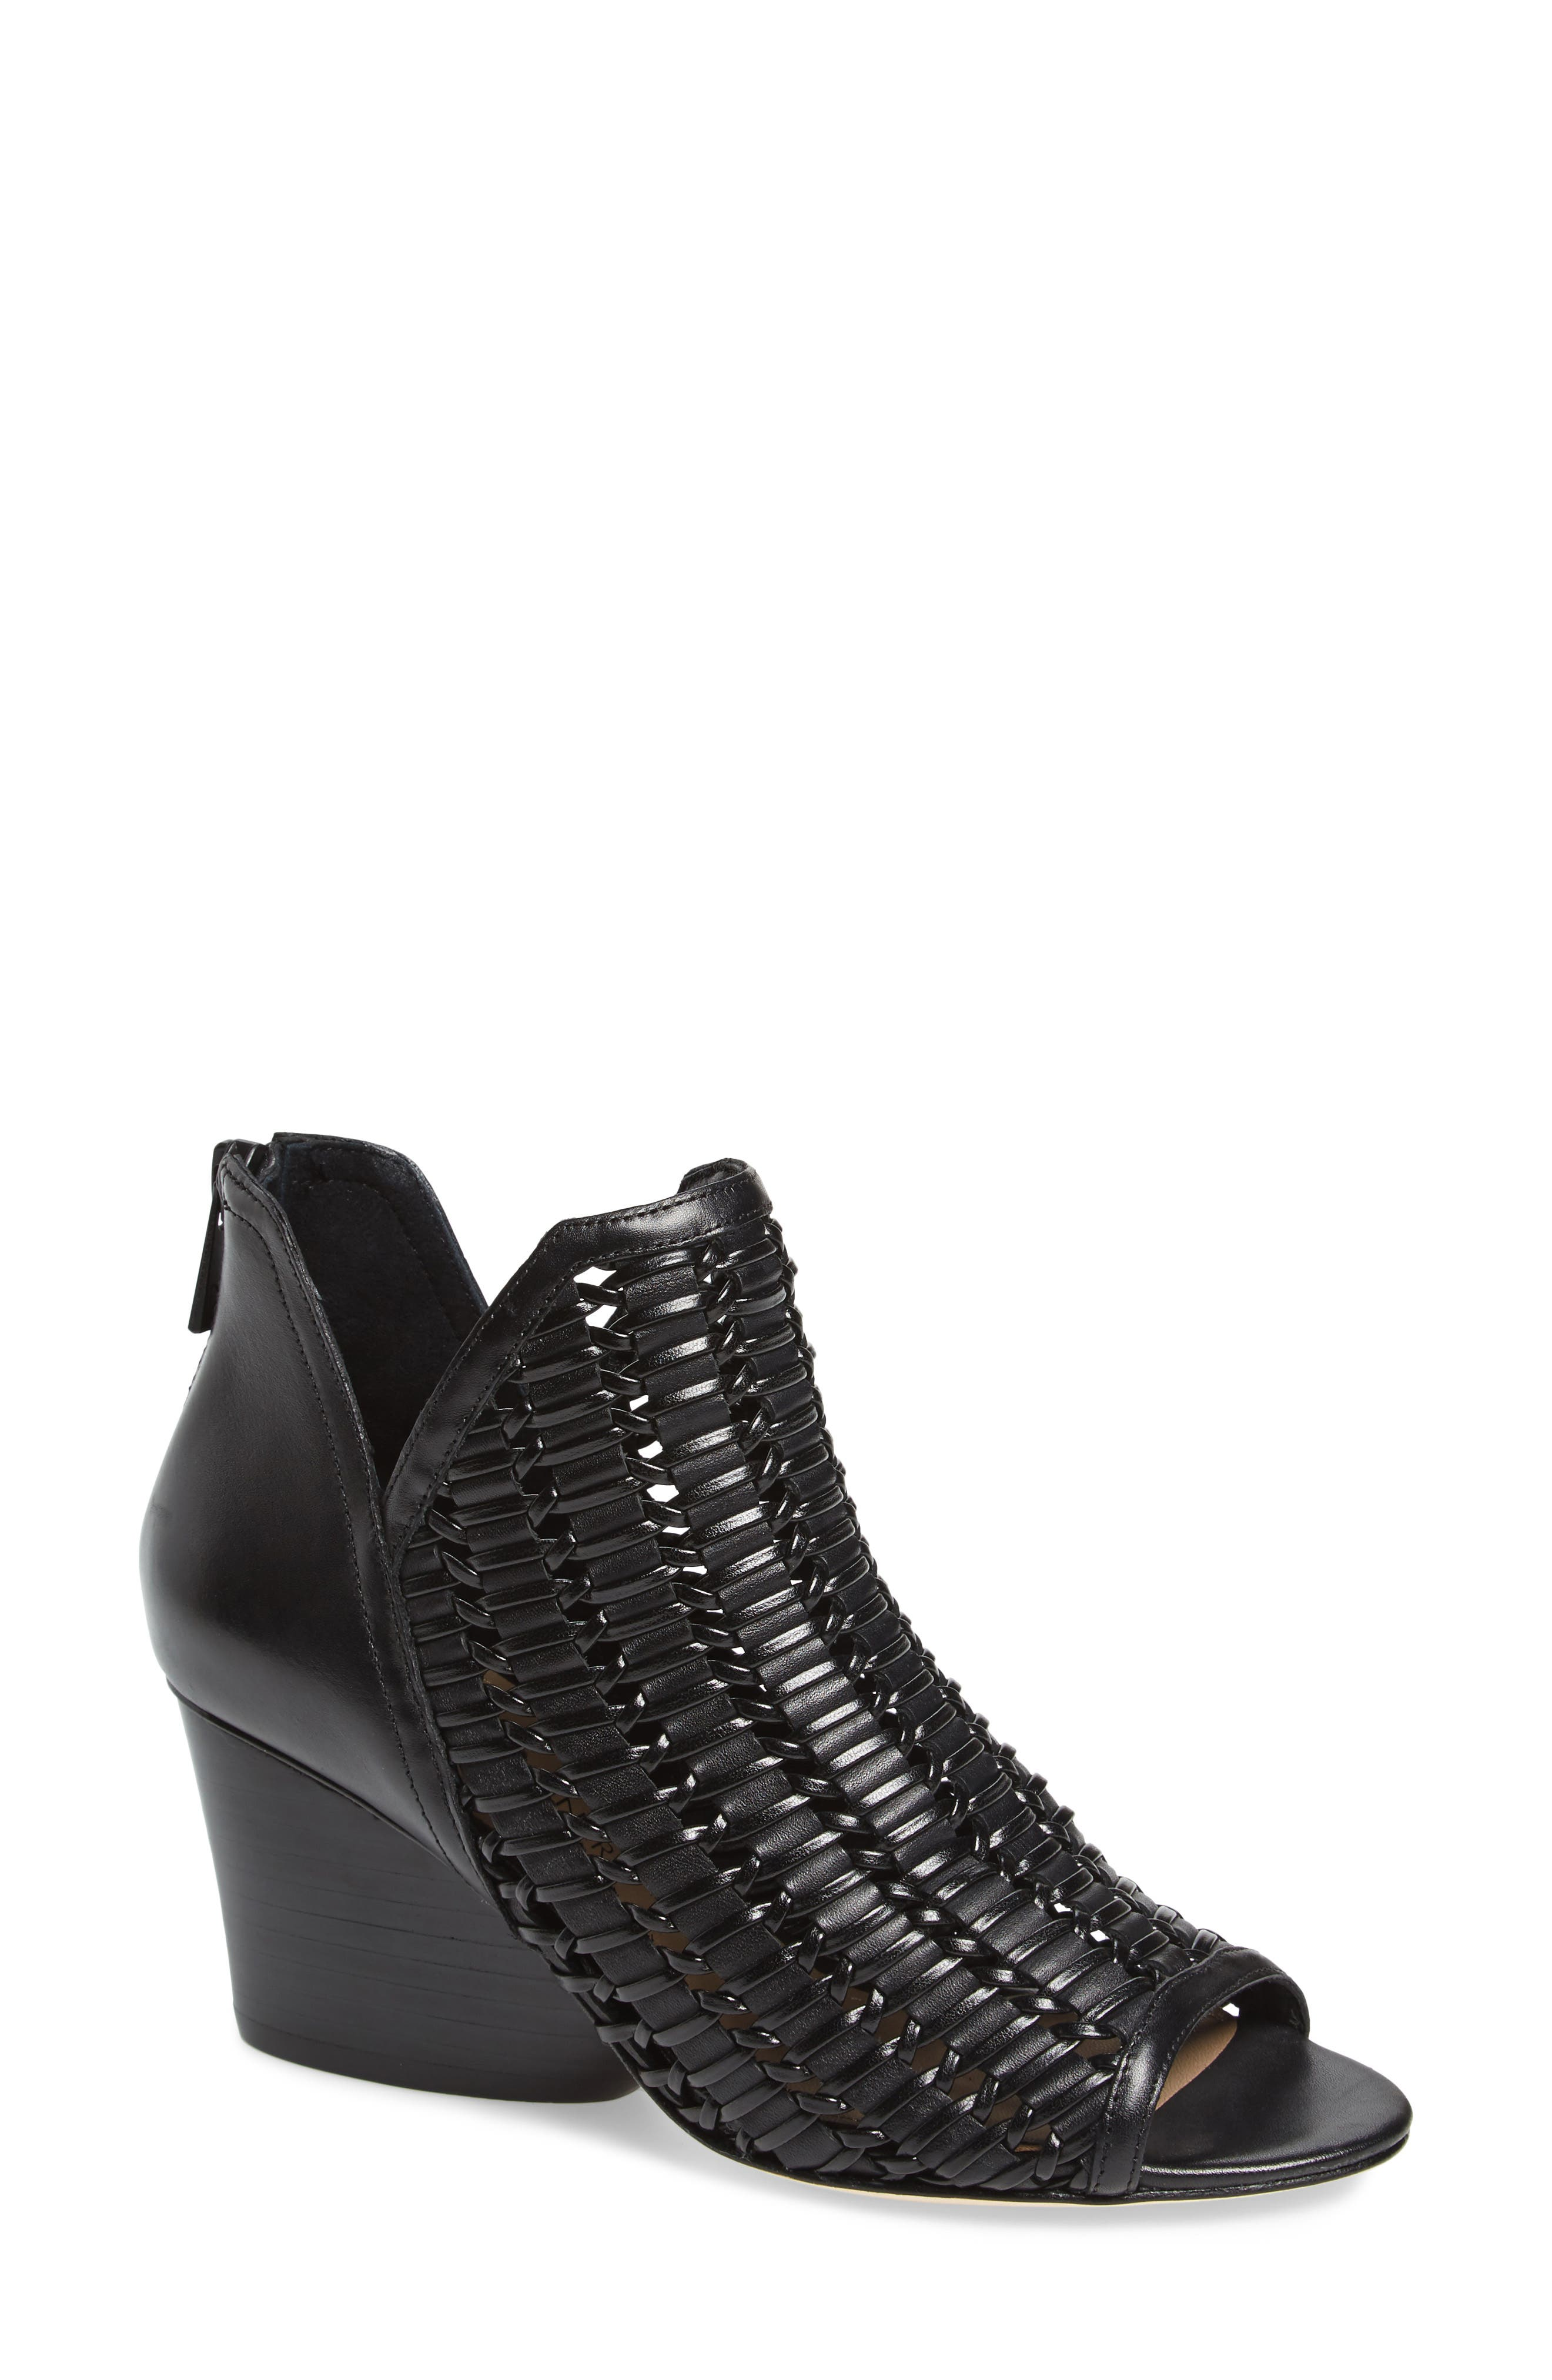 Jacqi Woven Open Toe Bootie,                             Main thumbnail 1, color,                             Black Leather